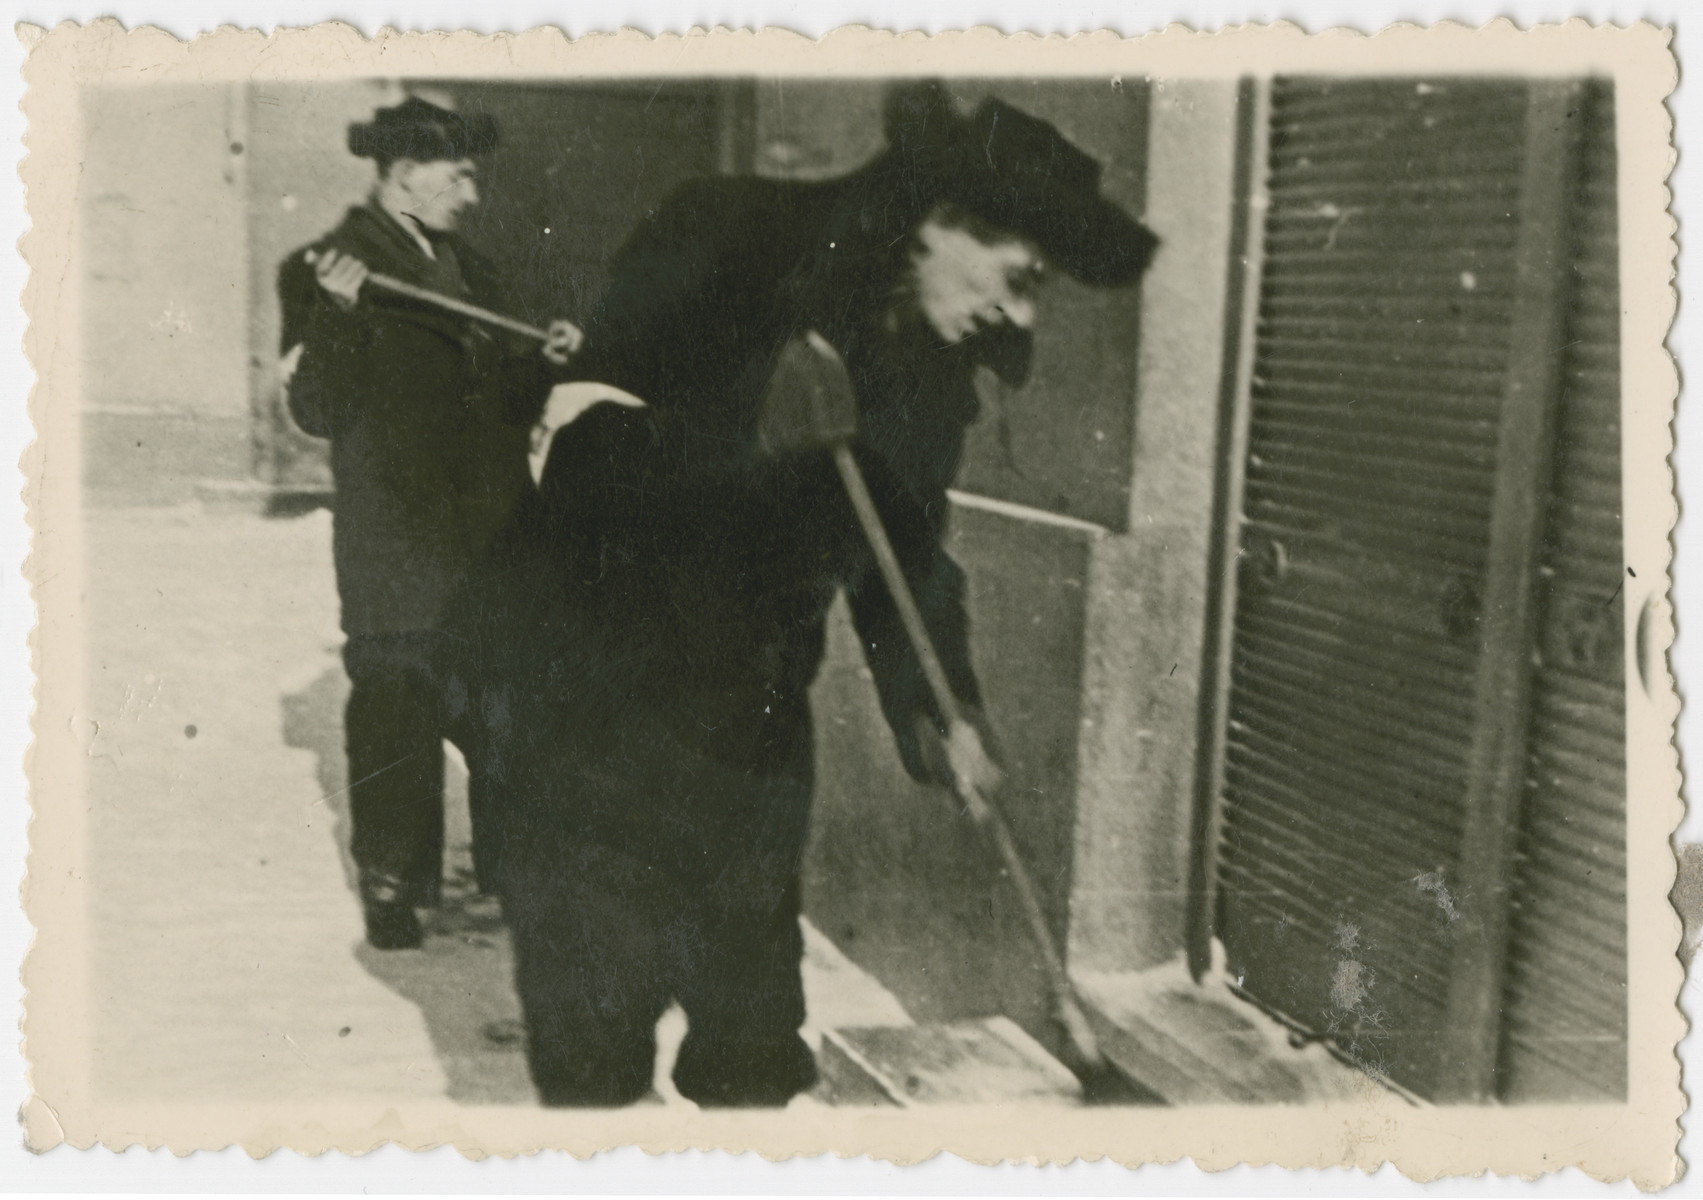 Two Jewish men shovel snow in the Krosno ghetto.